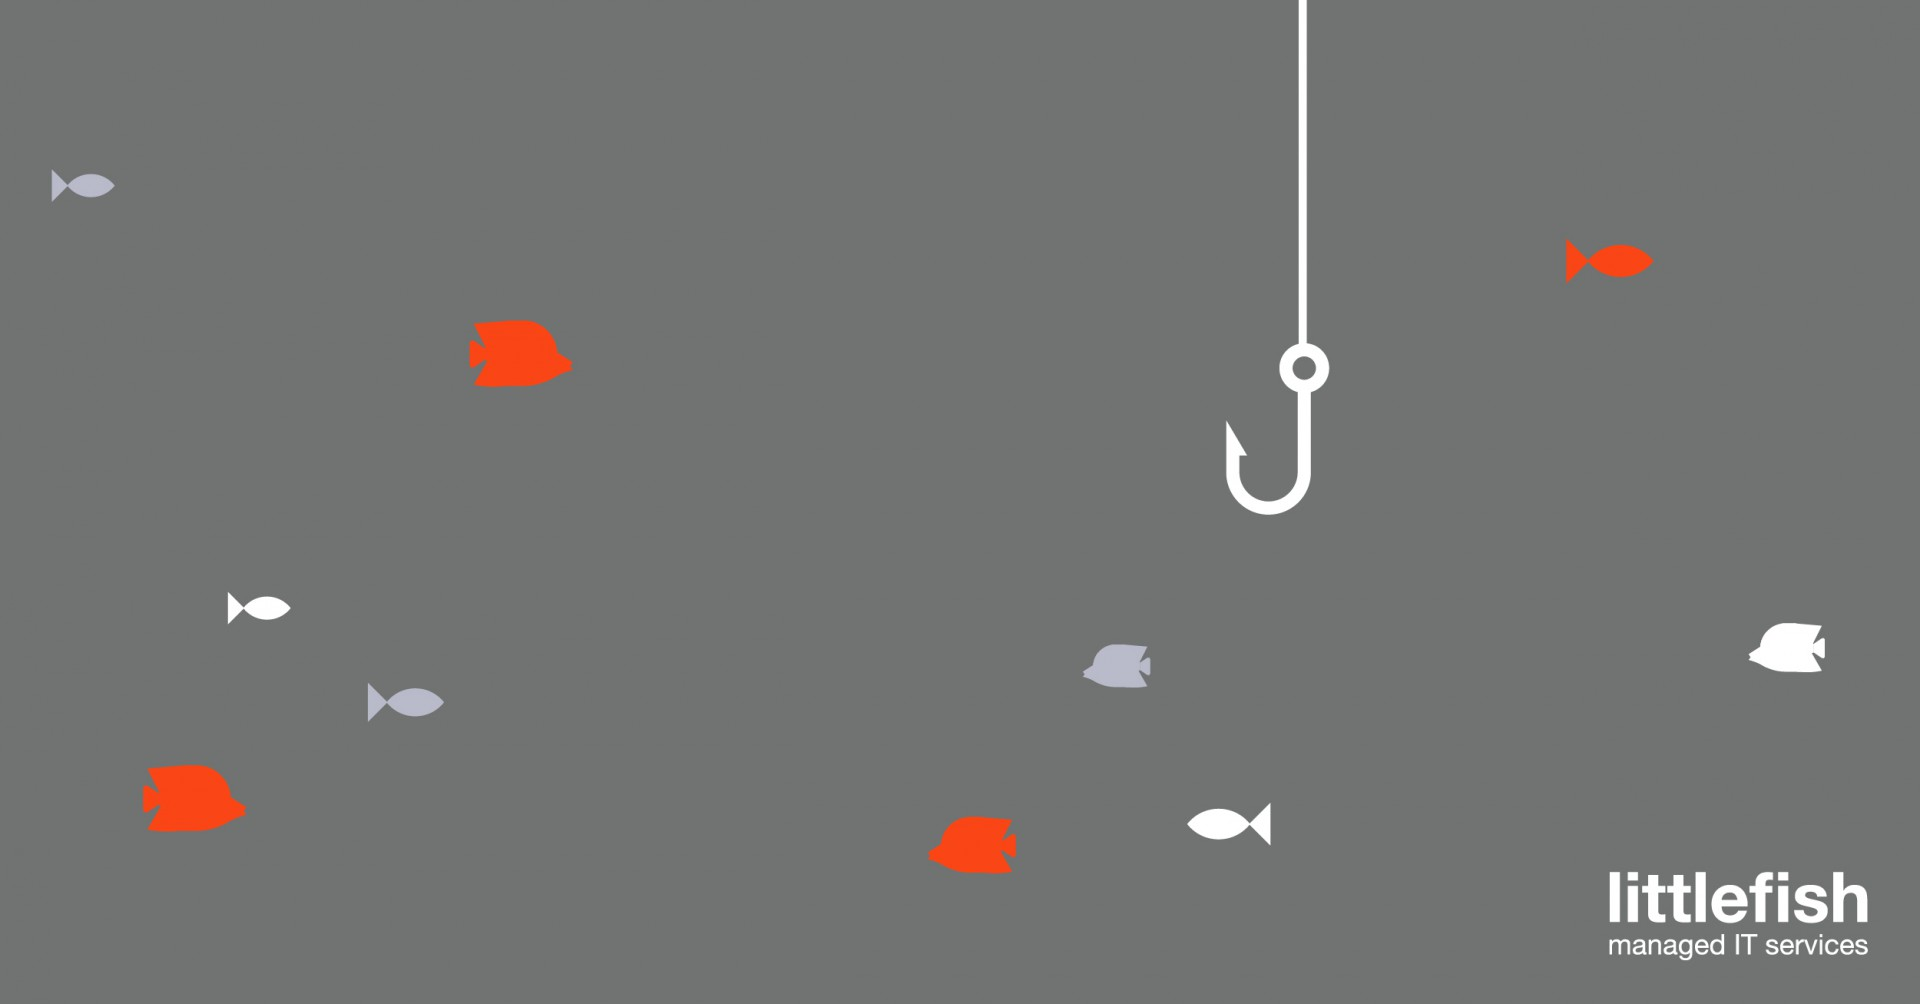 Littlefish User Education and Awareness training phishing graphic